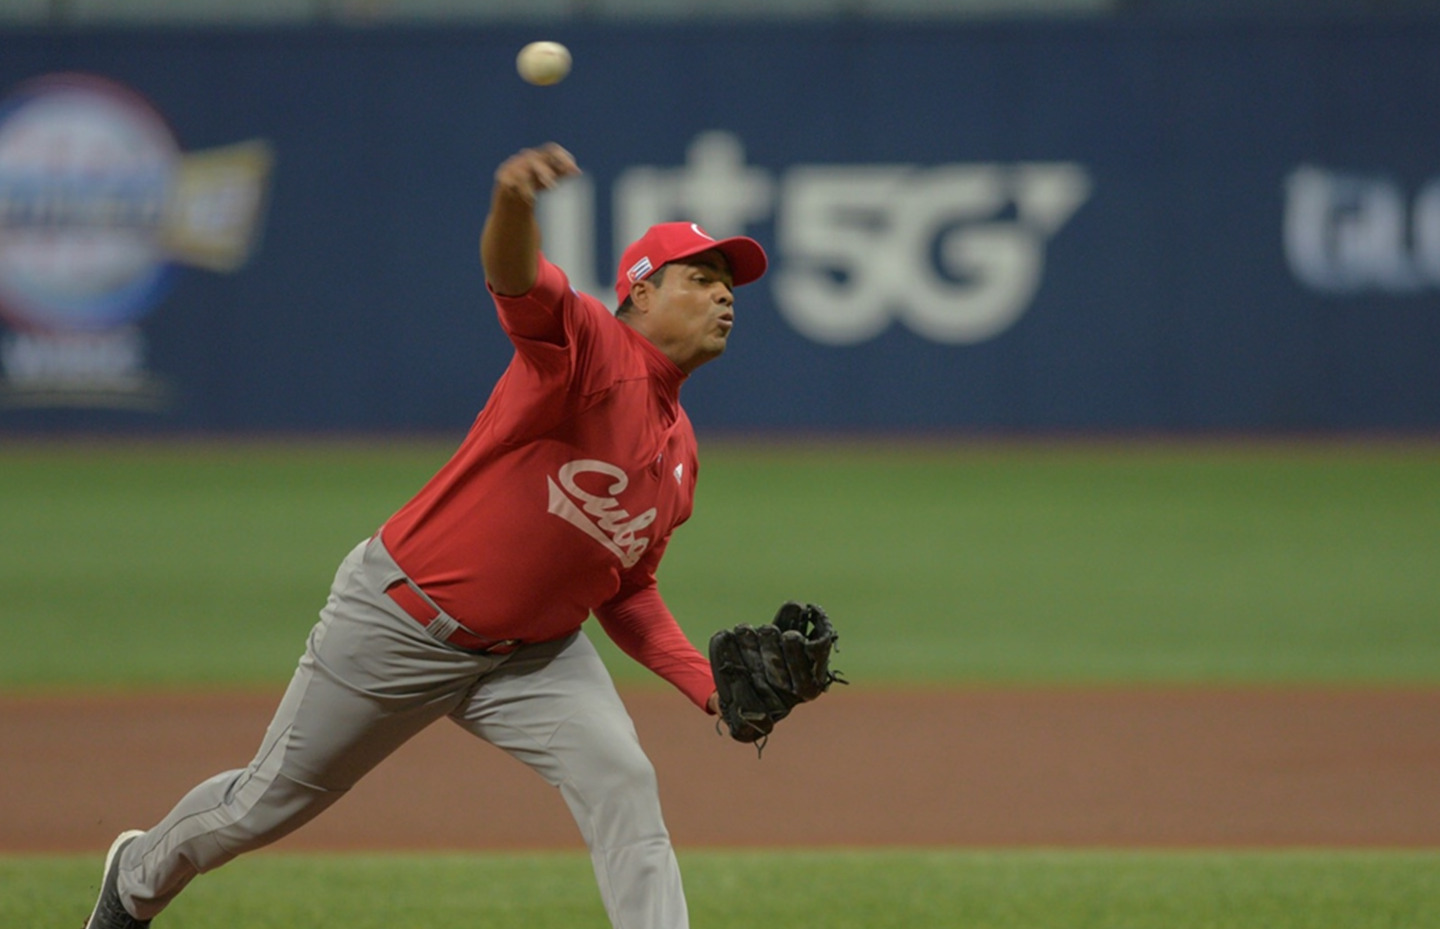 Juan Carlos Viera pitched five solid innings for Cuba